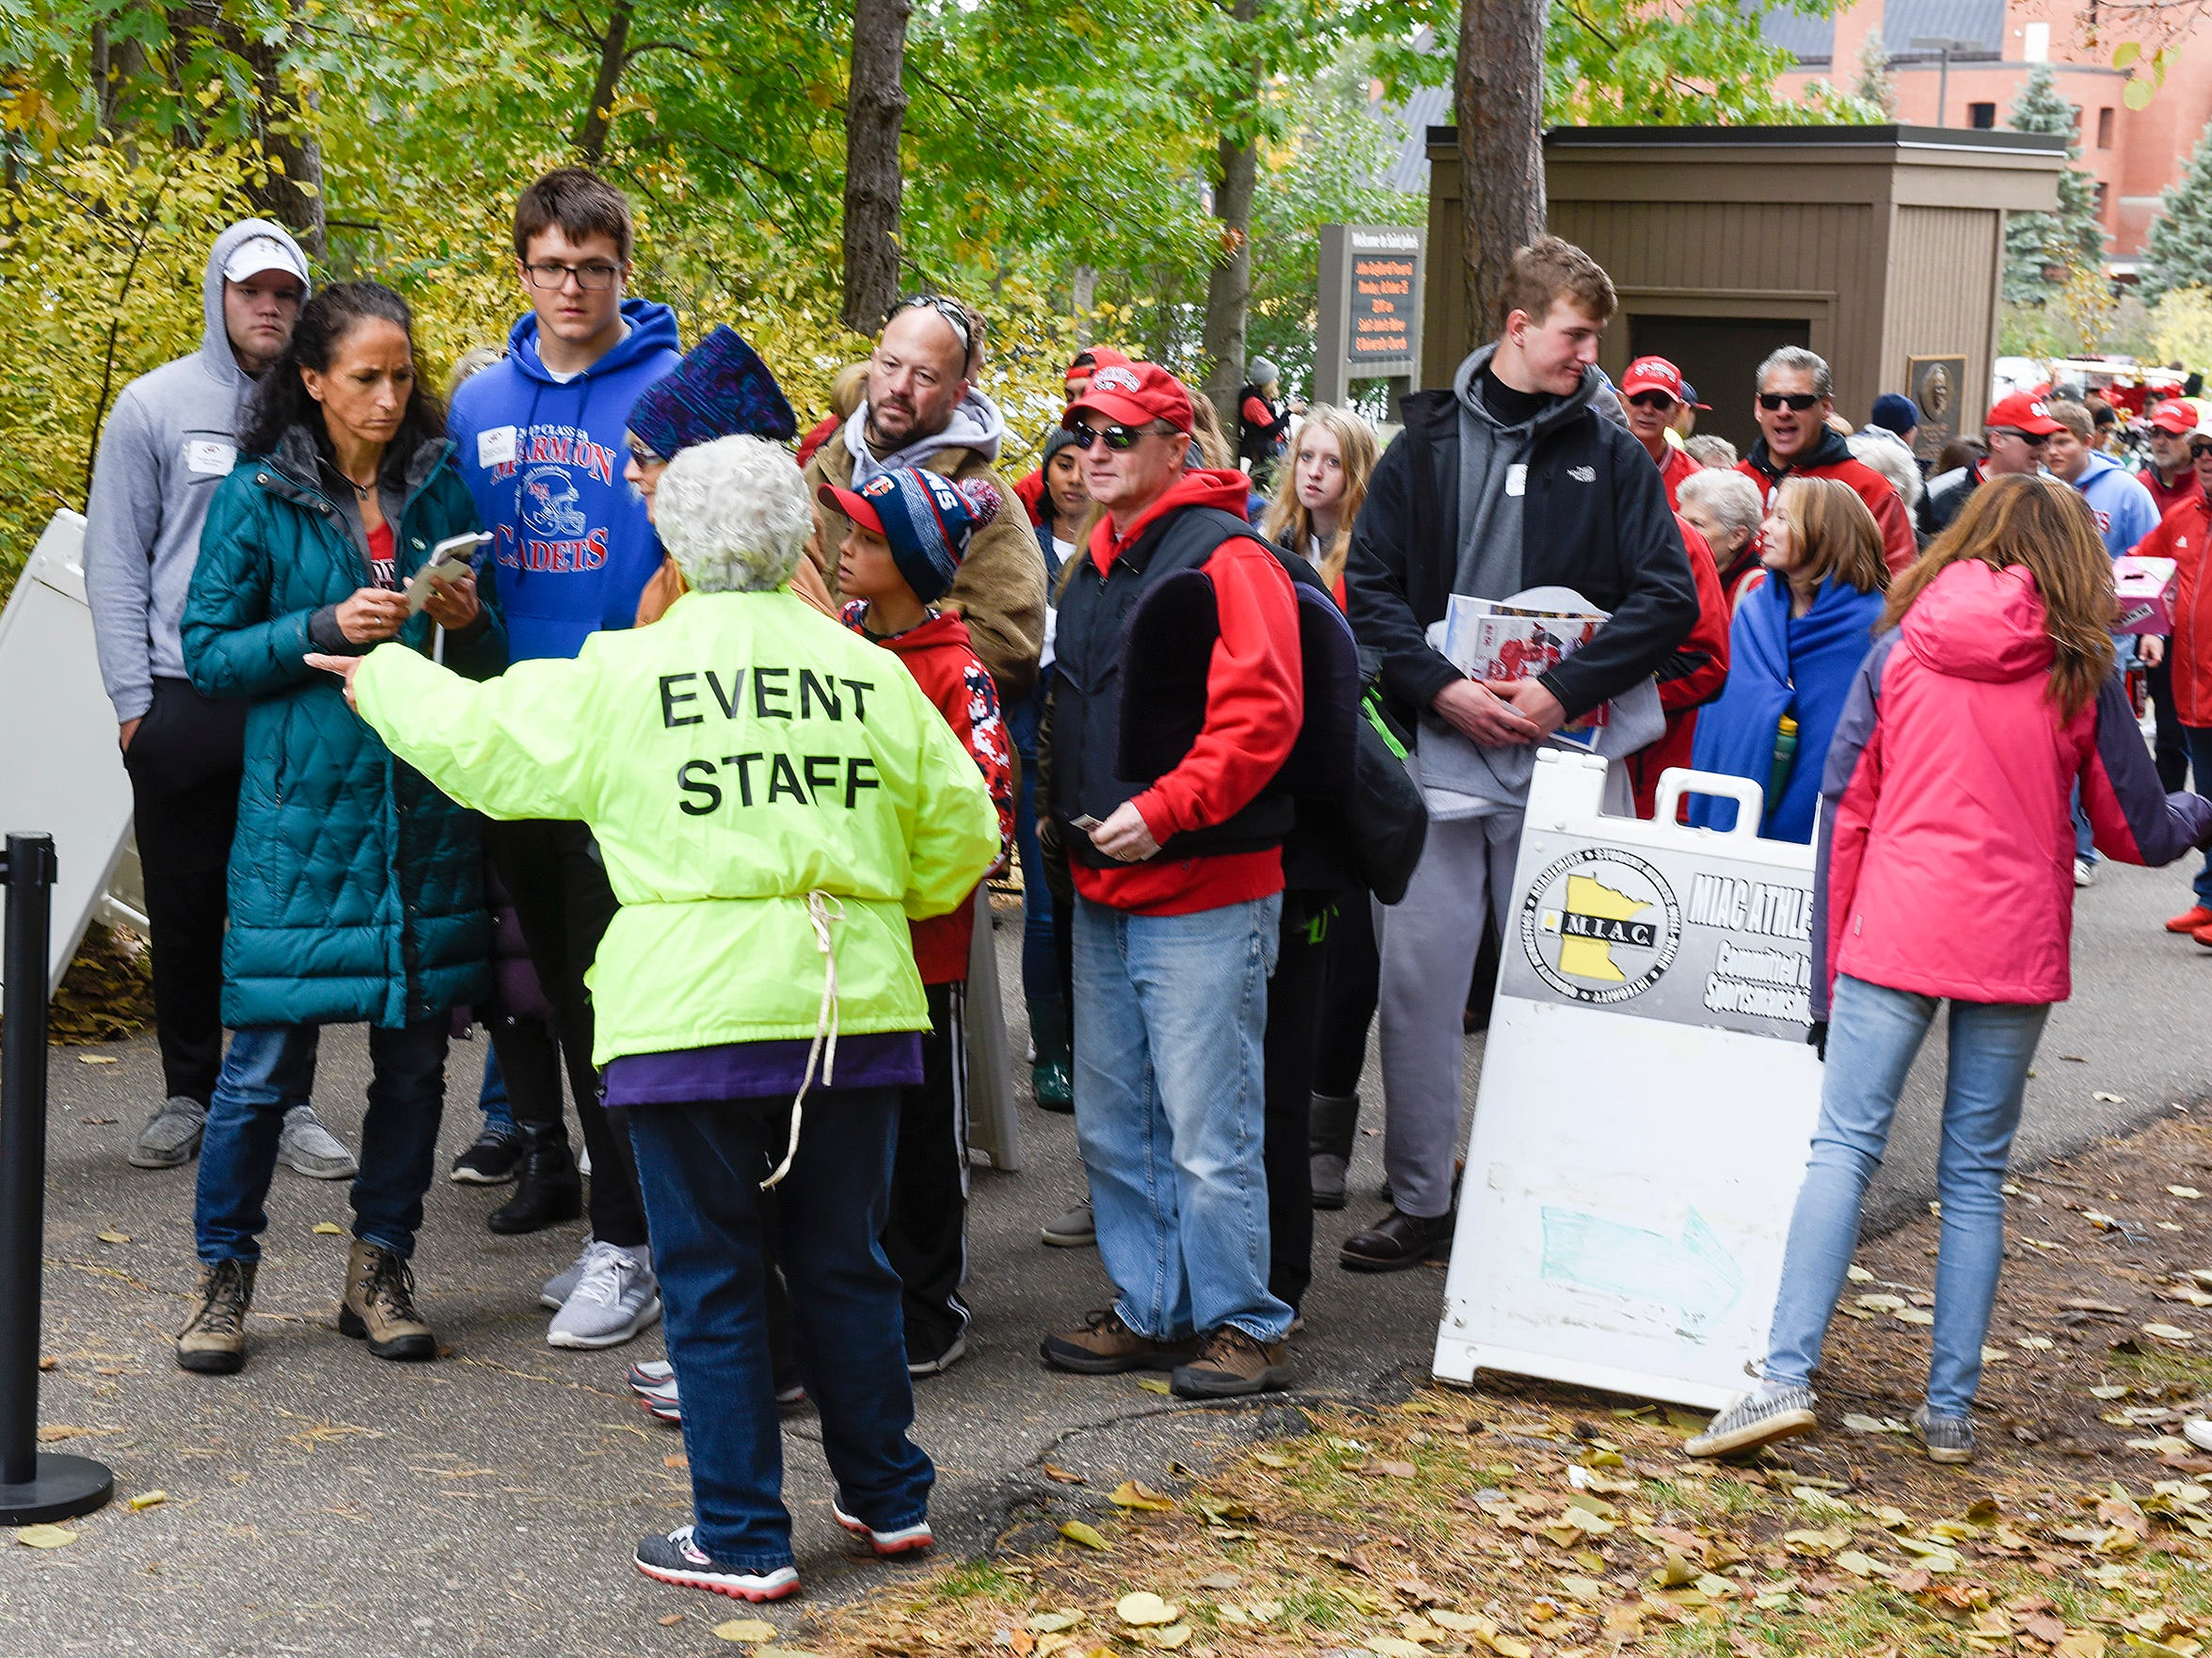 Fans enter the St. John's and St. Thomas game Saturday, Oct. 13, in Collegeville.